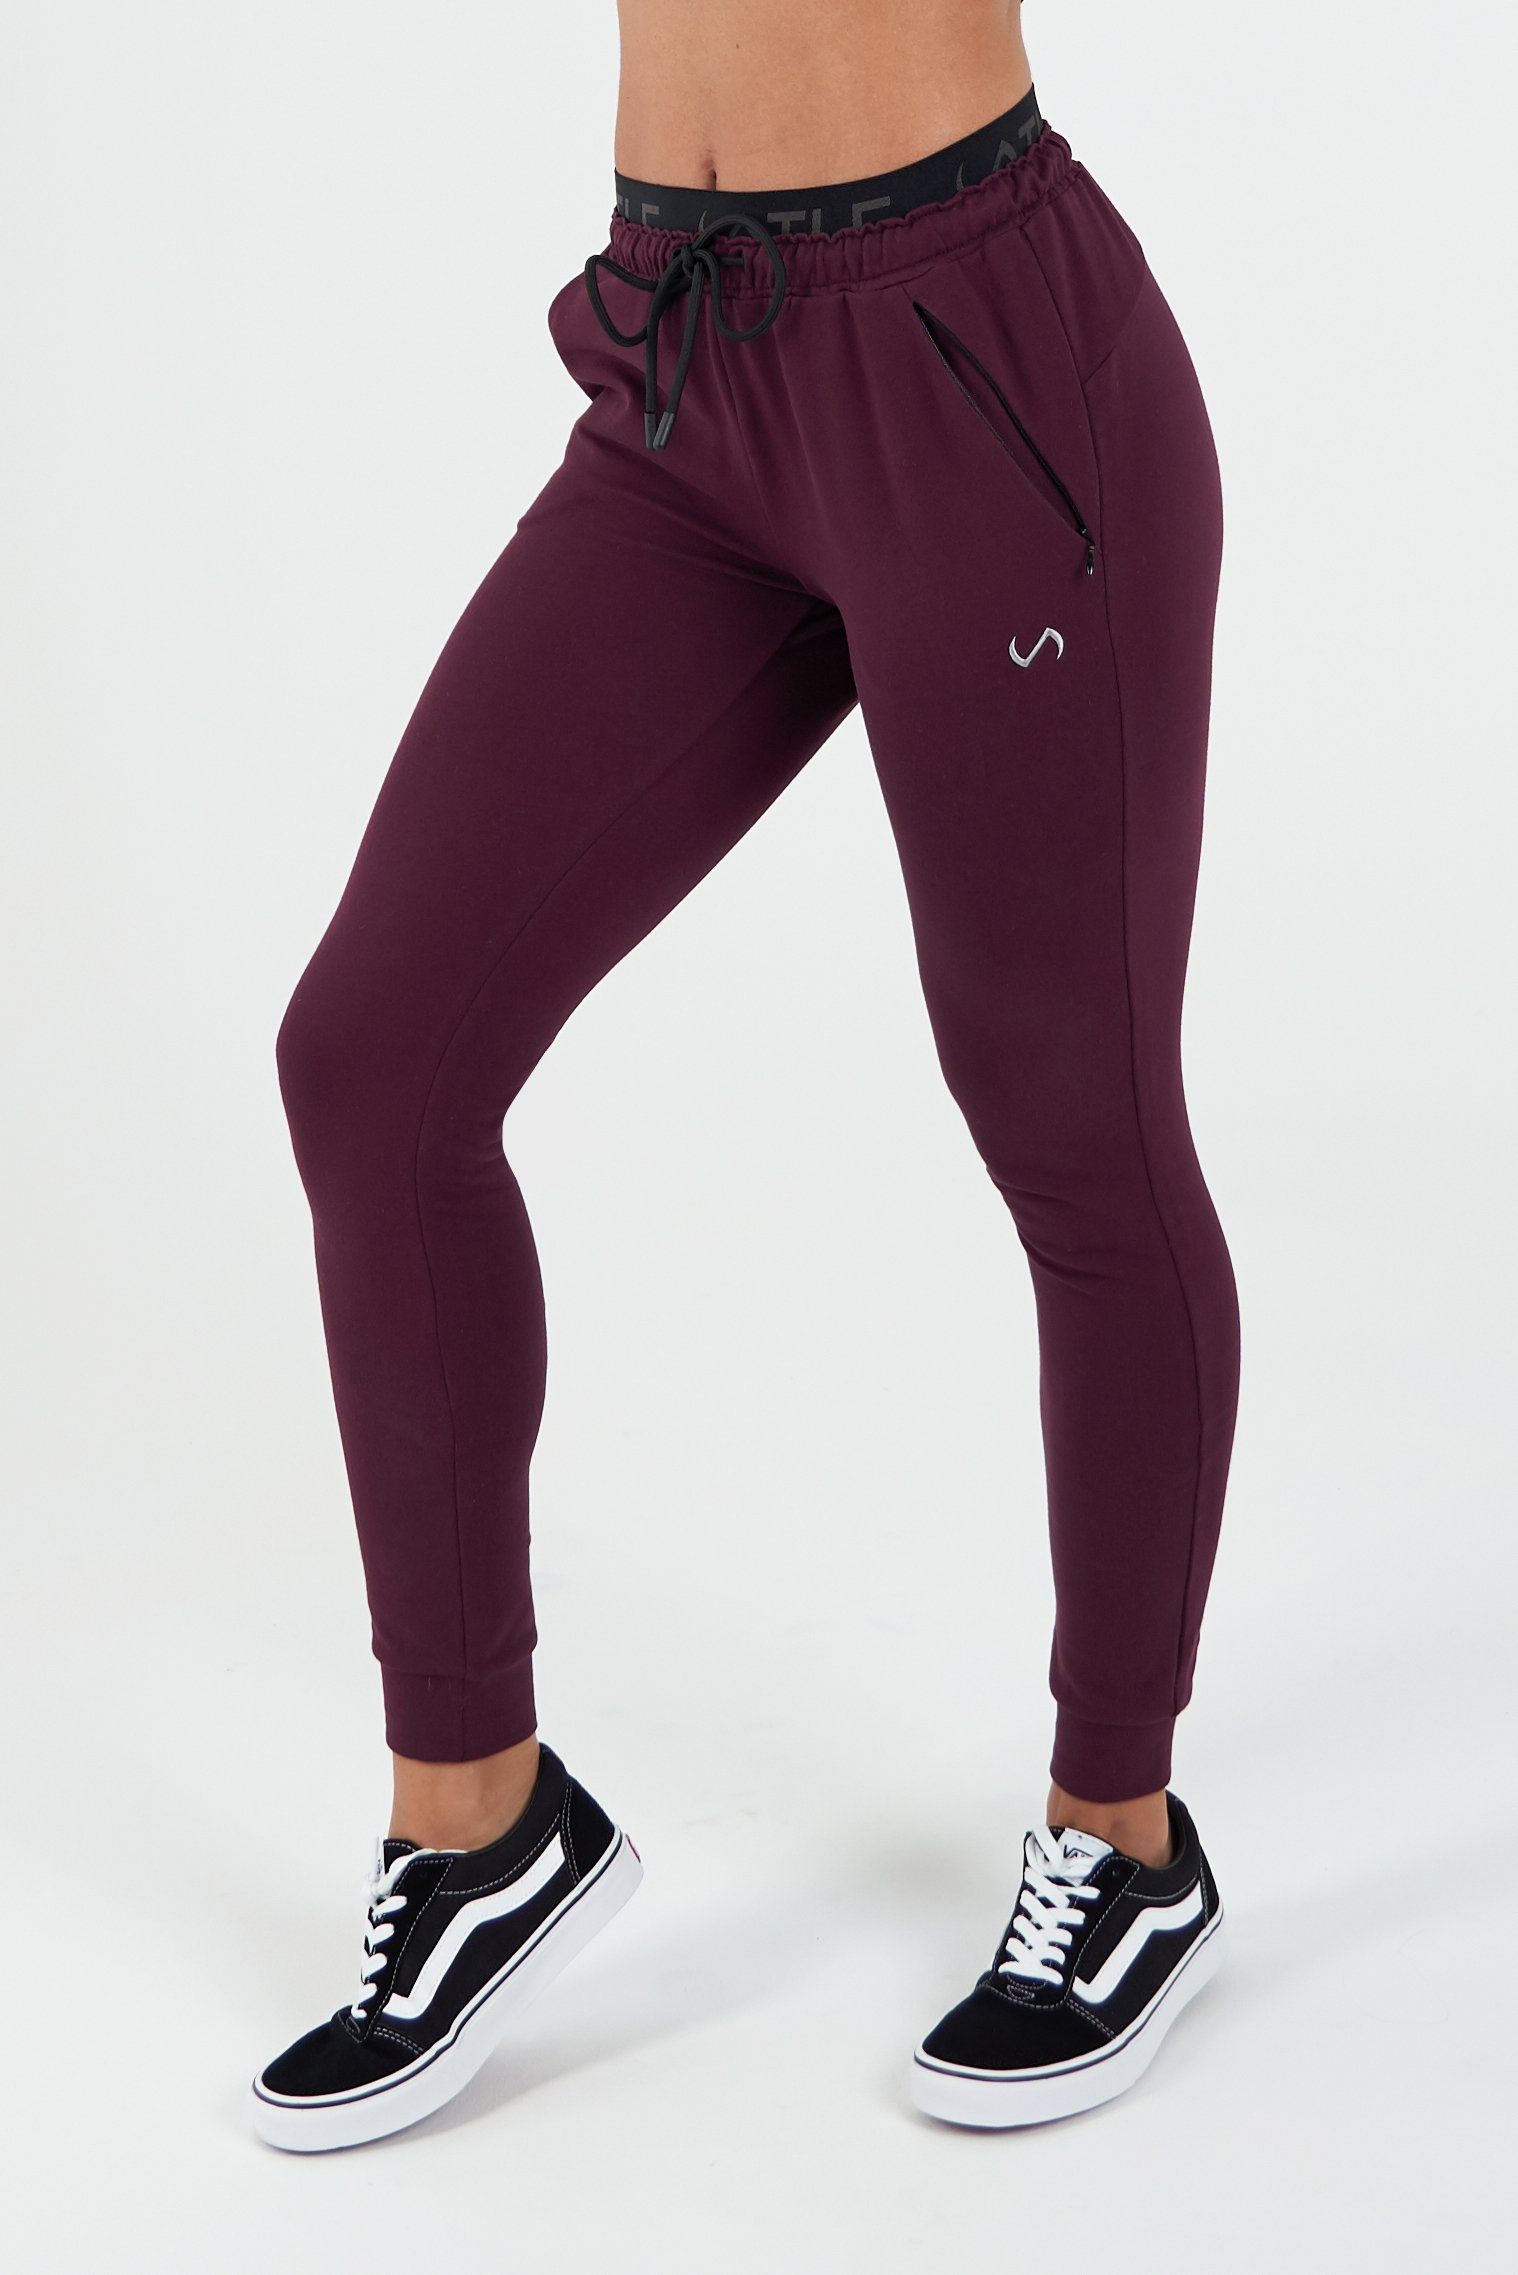 TLF All-Day Ease Comfy Joggers - Women's - TLF Apparel   Take Life Further